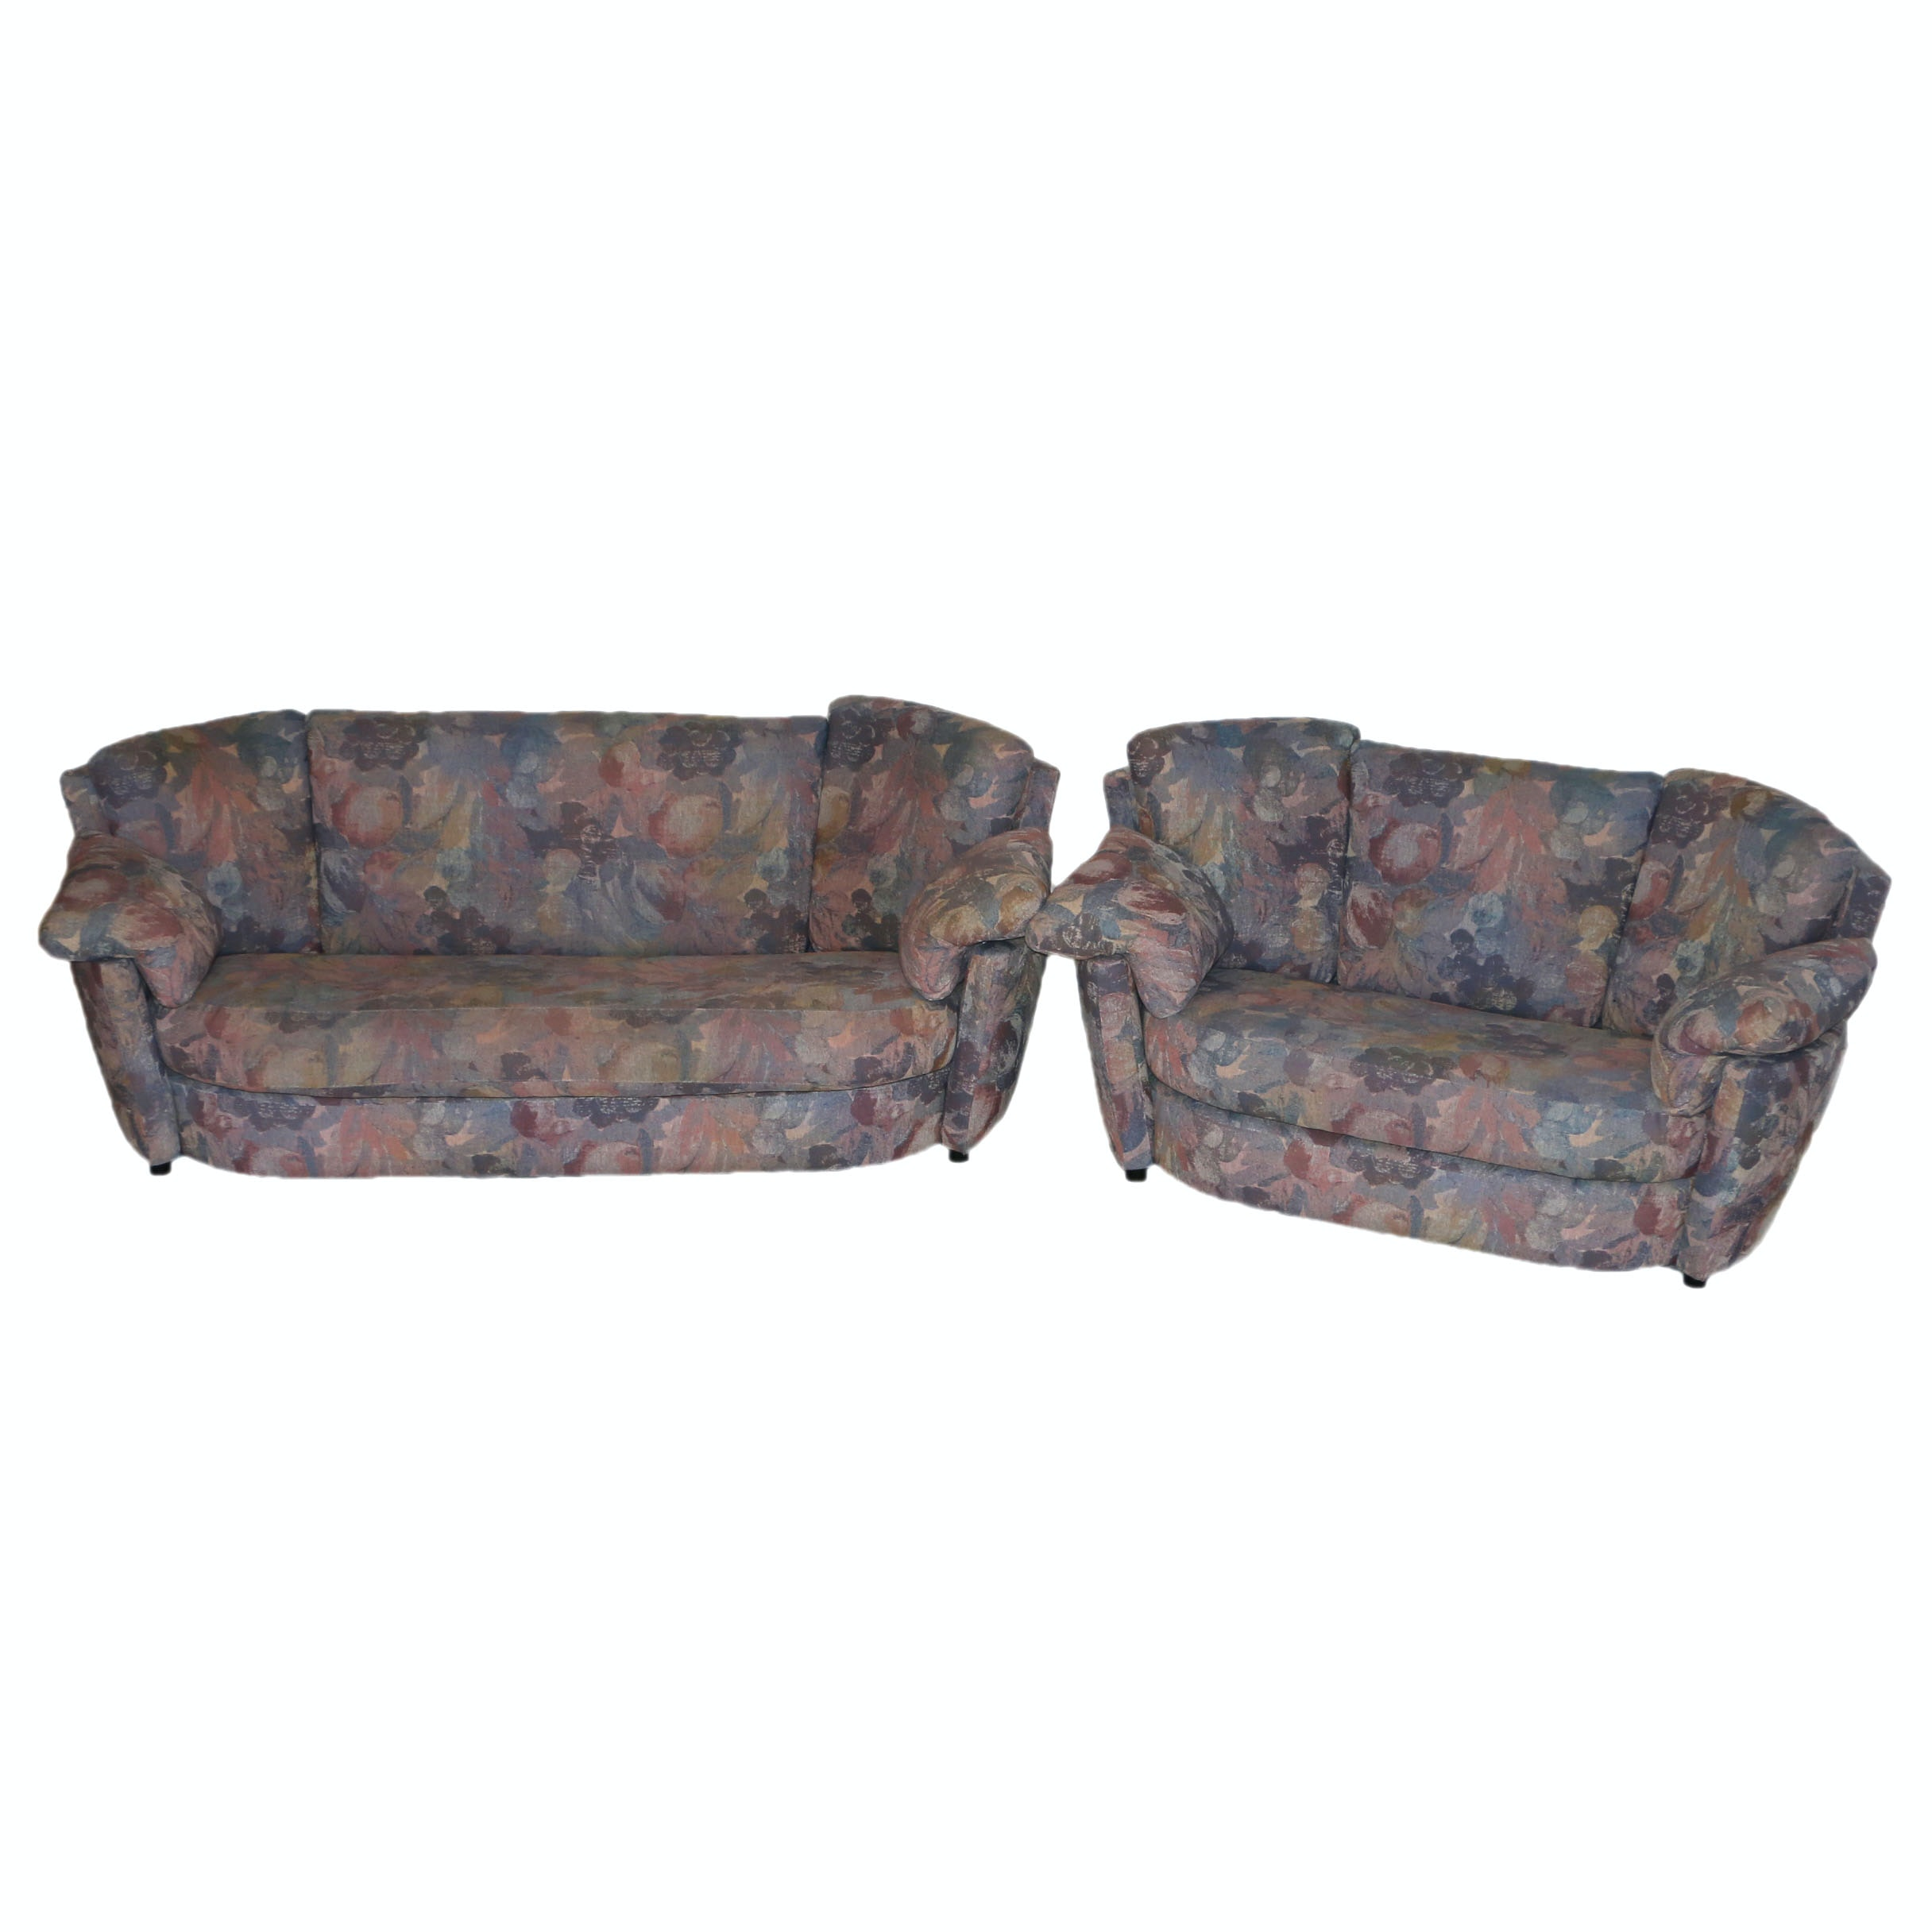 1980s Modern Floral Patterned Sofa and Loveseat by Josef Otmar